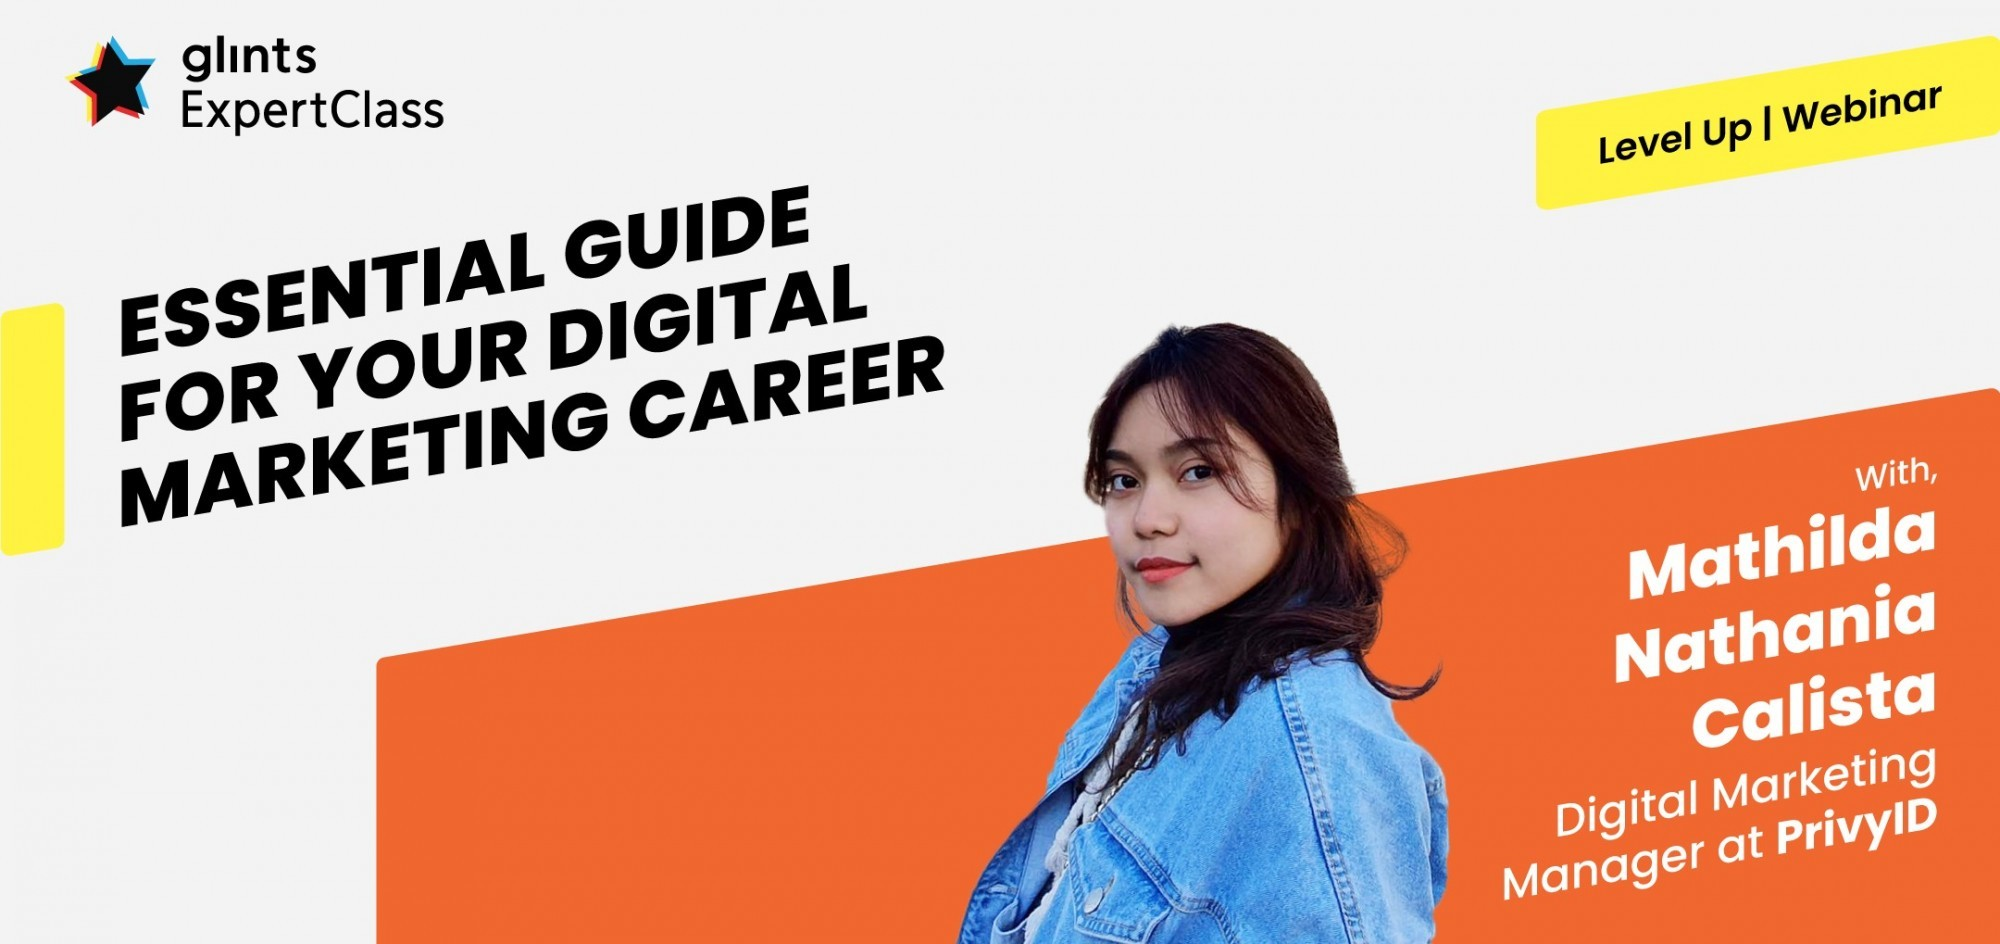 [Online Glints ExpertClass] Essential Guide For Your Digital Marketing Career